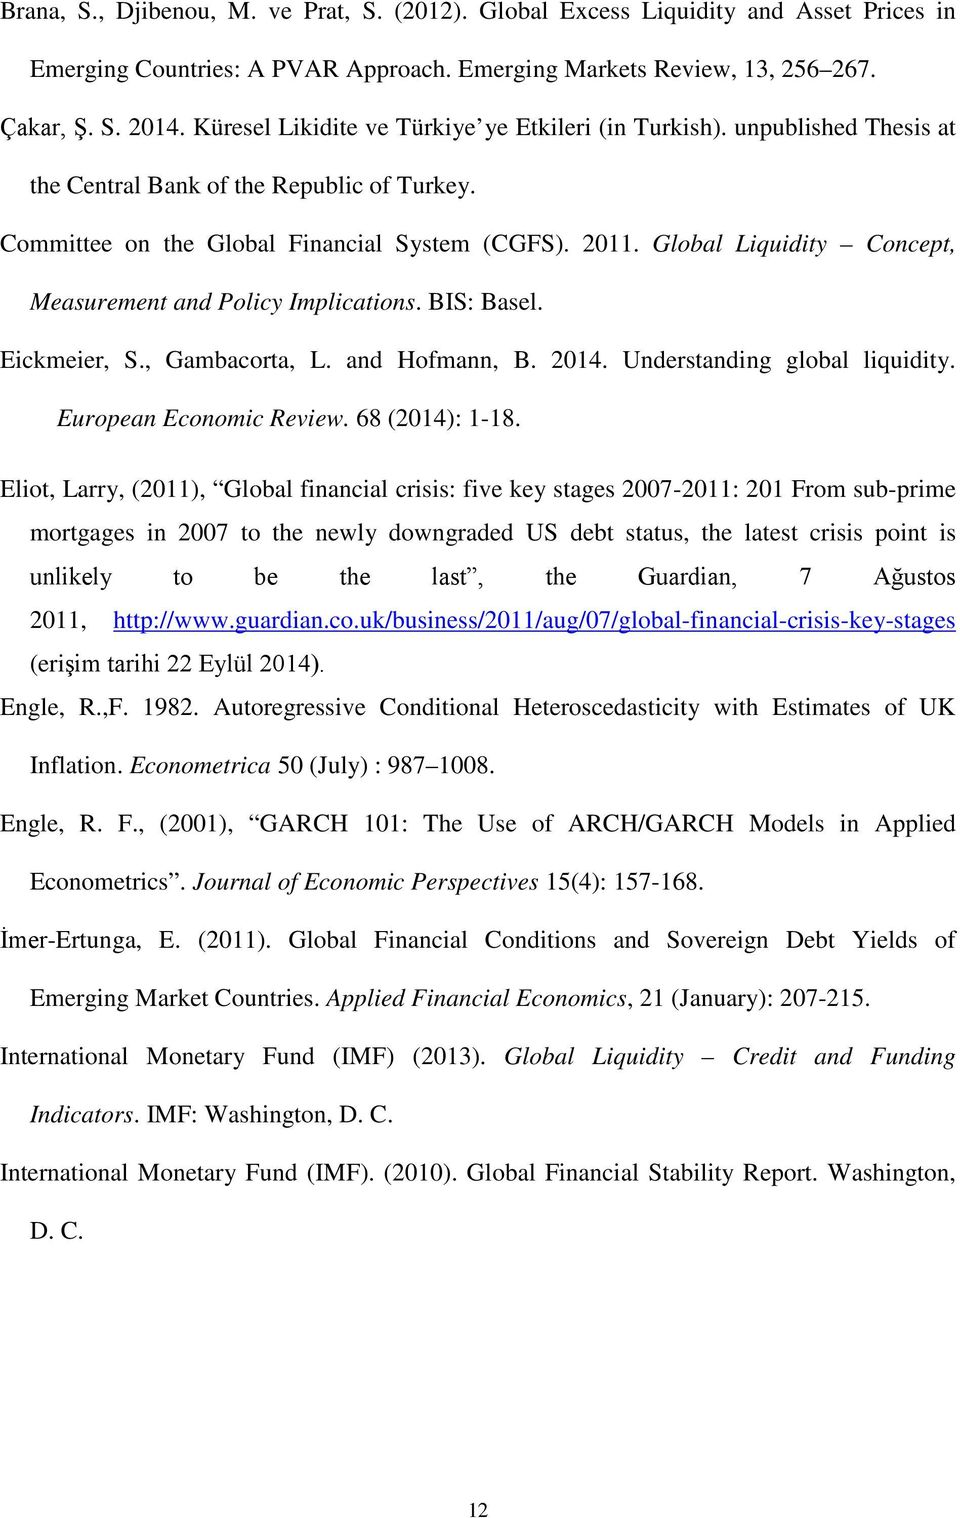 Global Liquidity Concept, Measurement and Policy Implications. BIS: Basel. Eickmeier, S., Gambacorta, L. and Hofmann, B. 014. Understanding global liquidity. European Economic Review. 68 (014): 1-18.